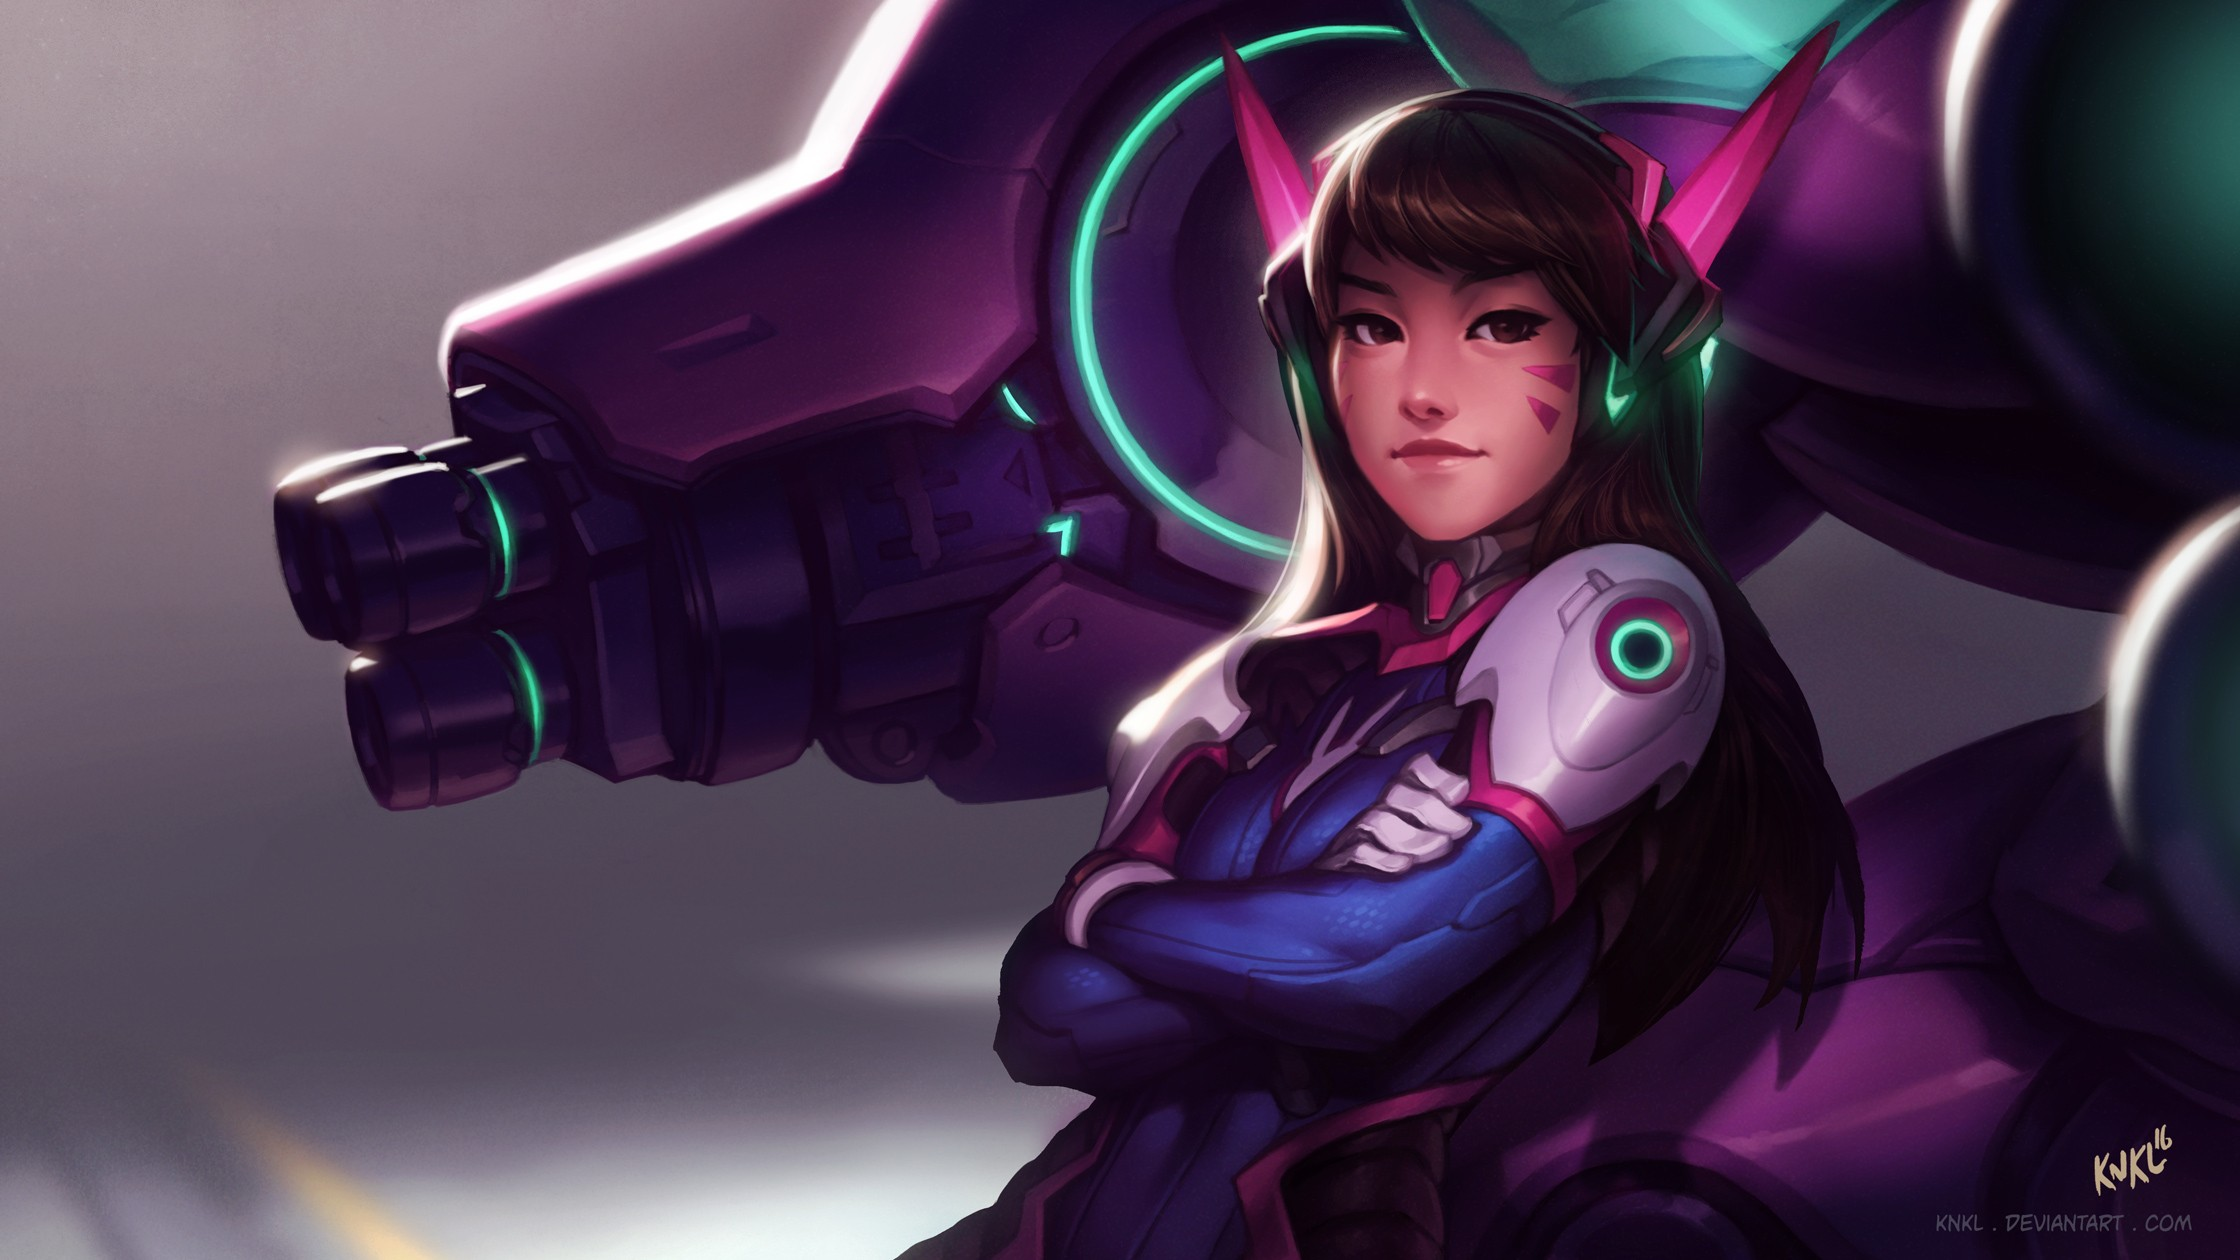 Anime 2240x1260 Overwatch D.Va (Overwatch) PC gaming anime girls anime